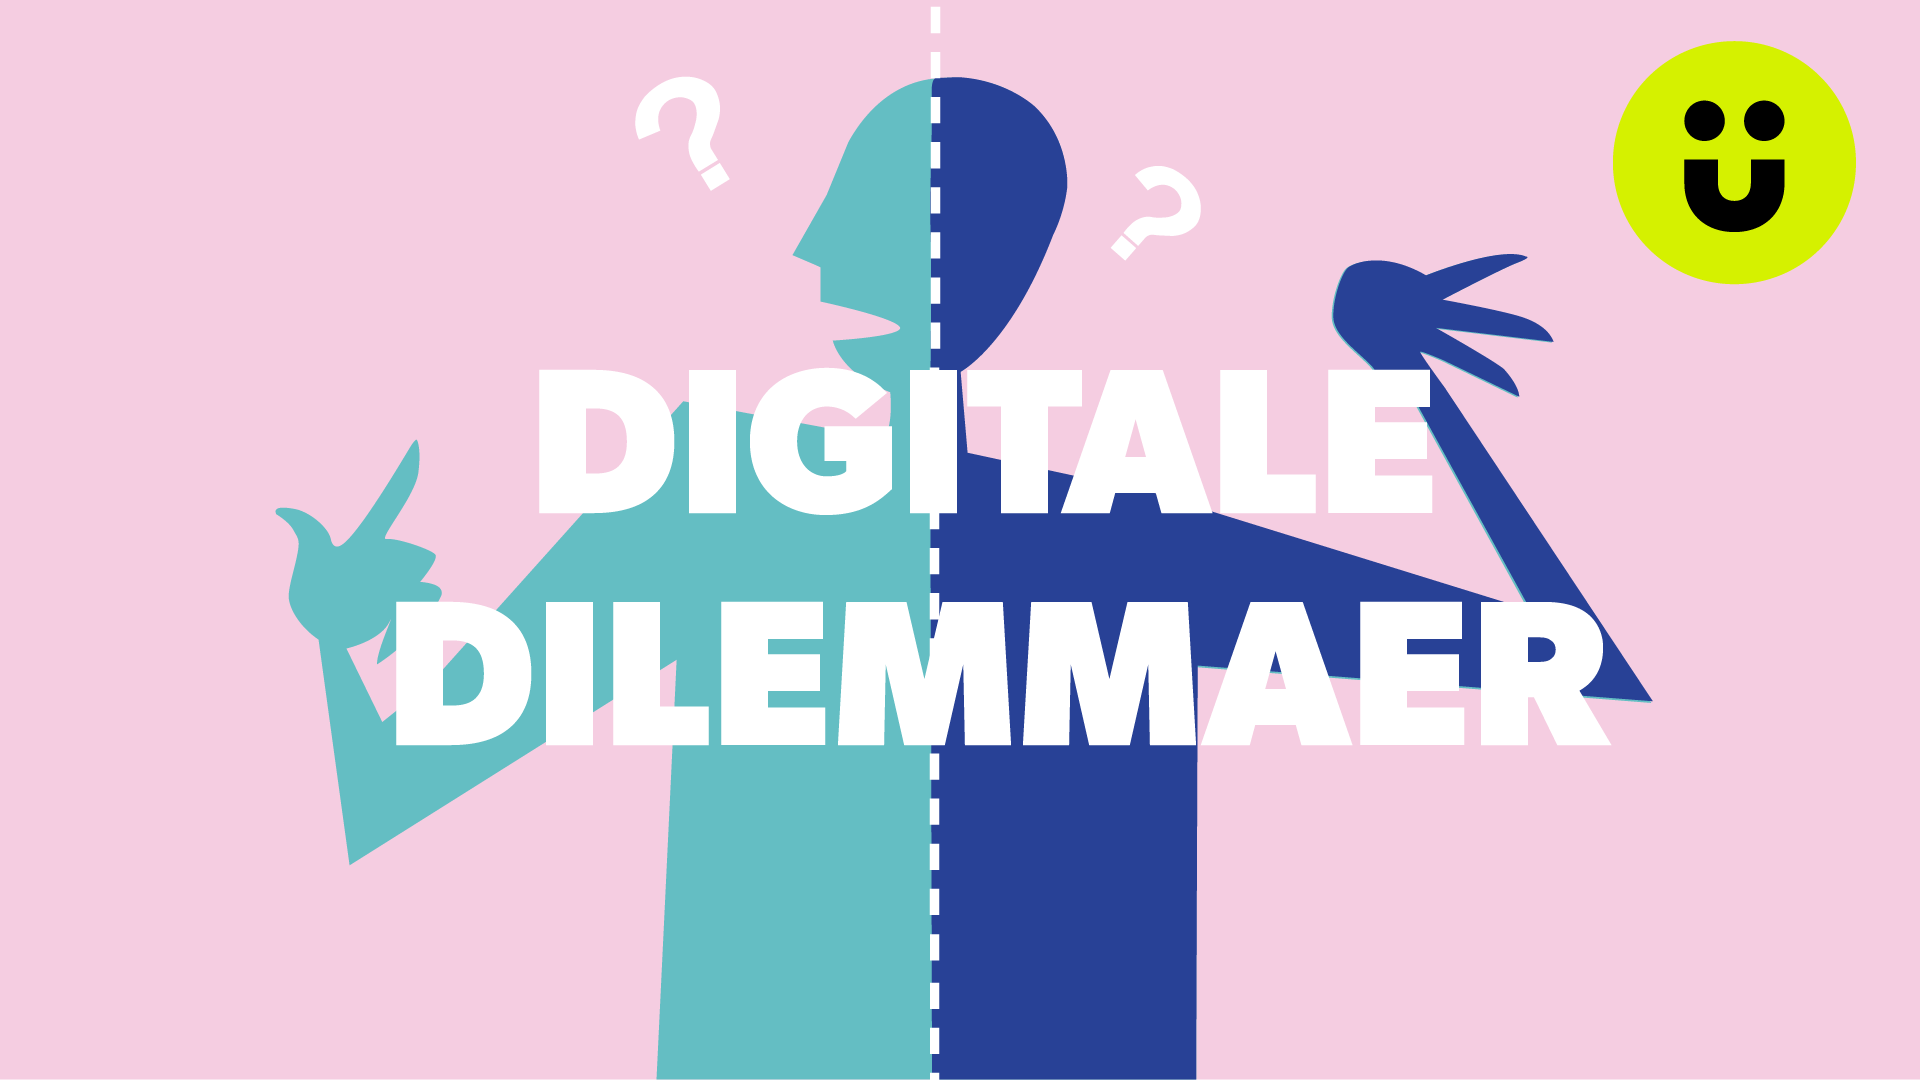 digitaldannelse_temabillede-03-03.png